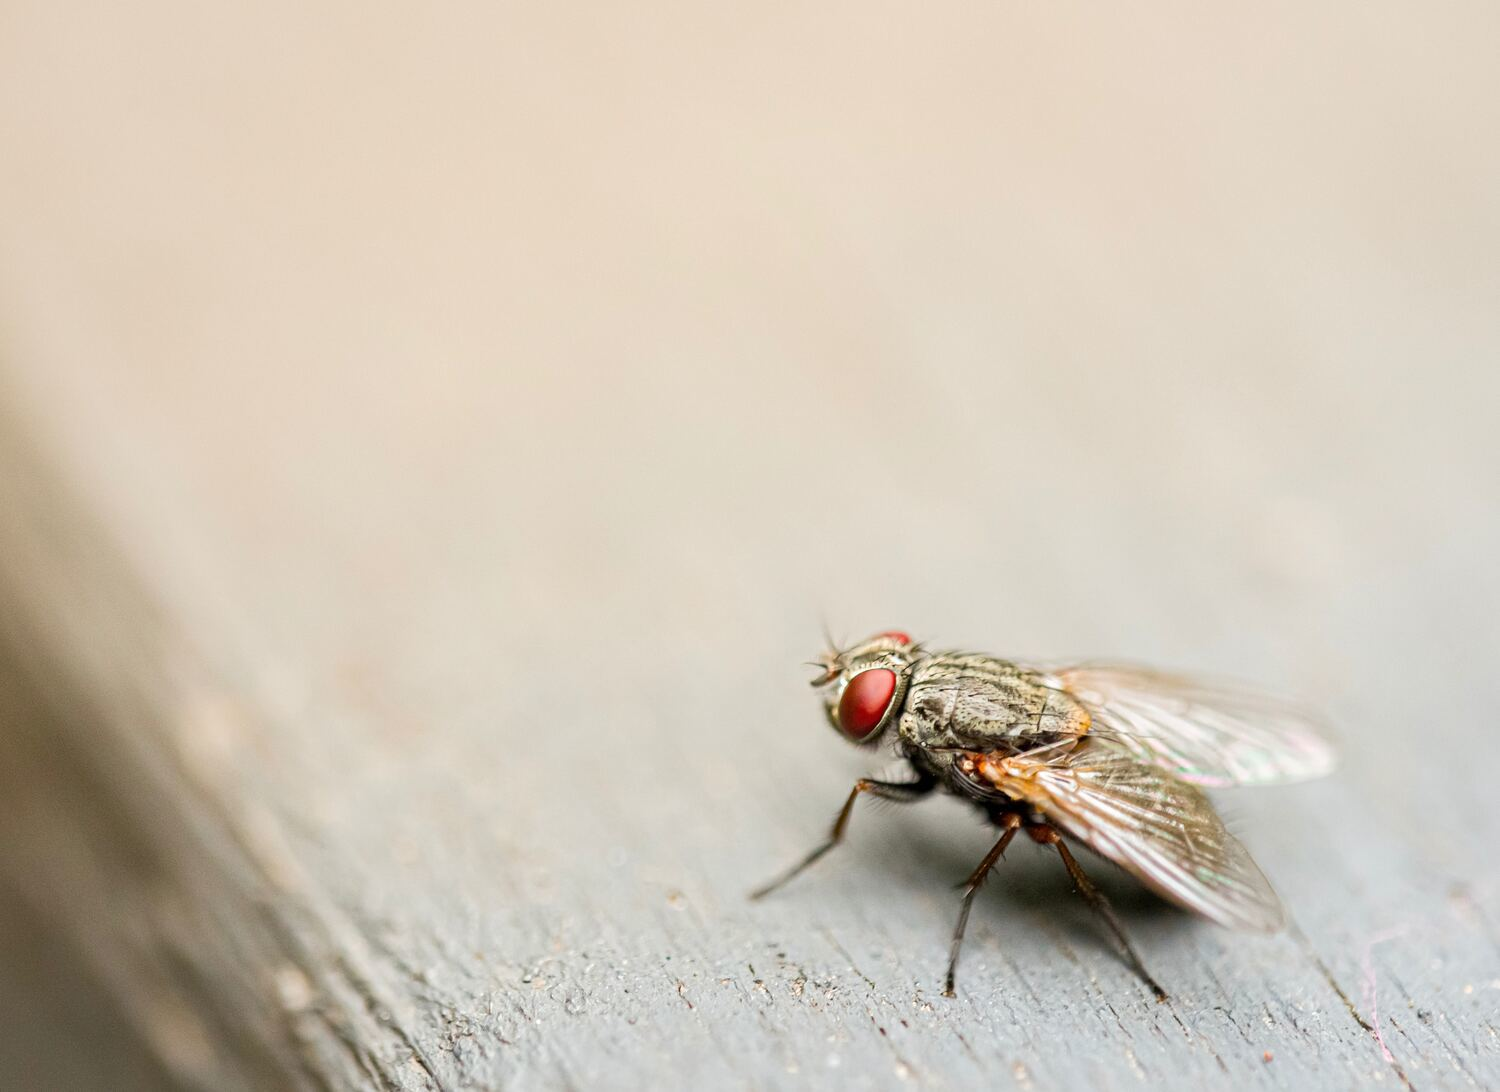 When do house flies become a problem?